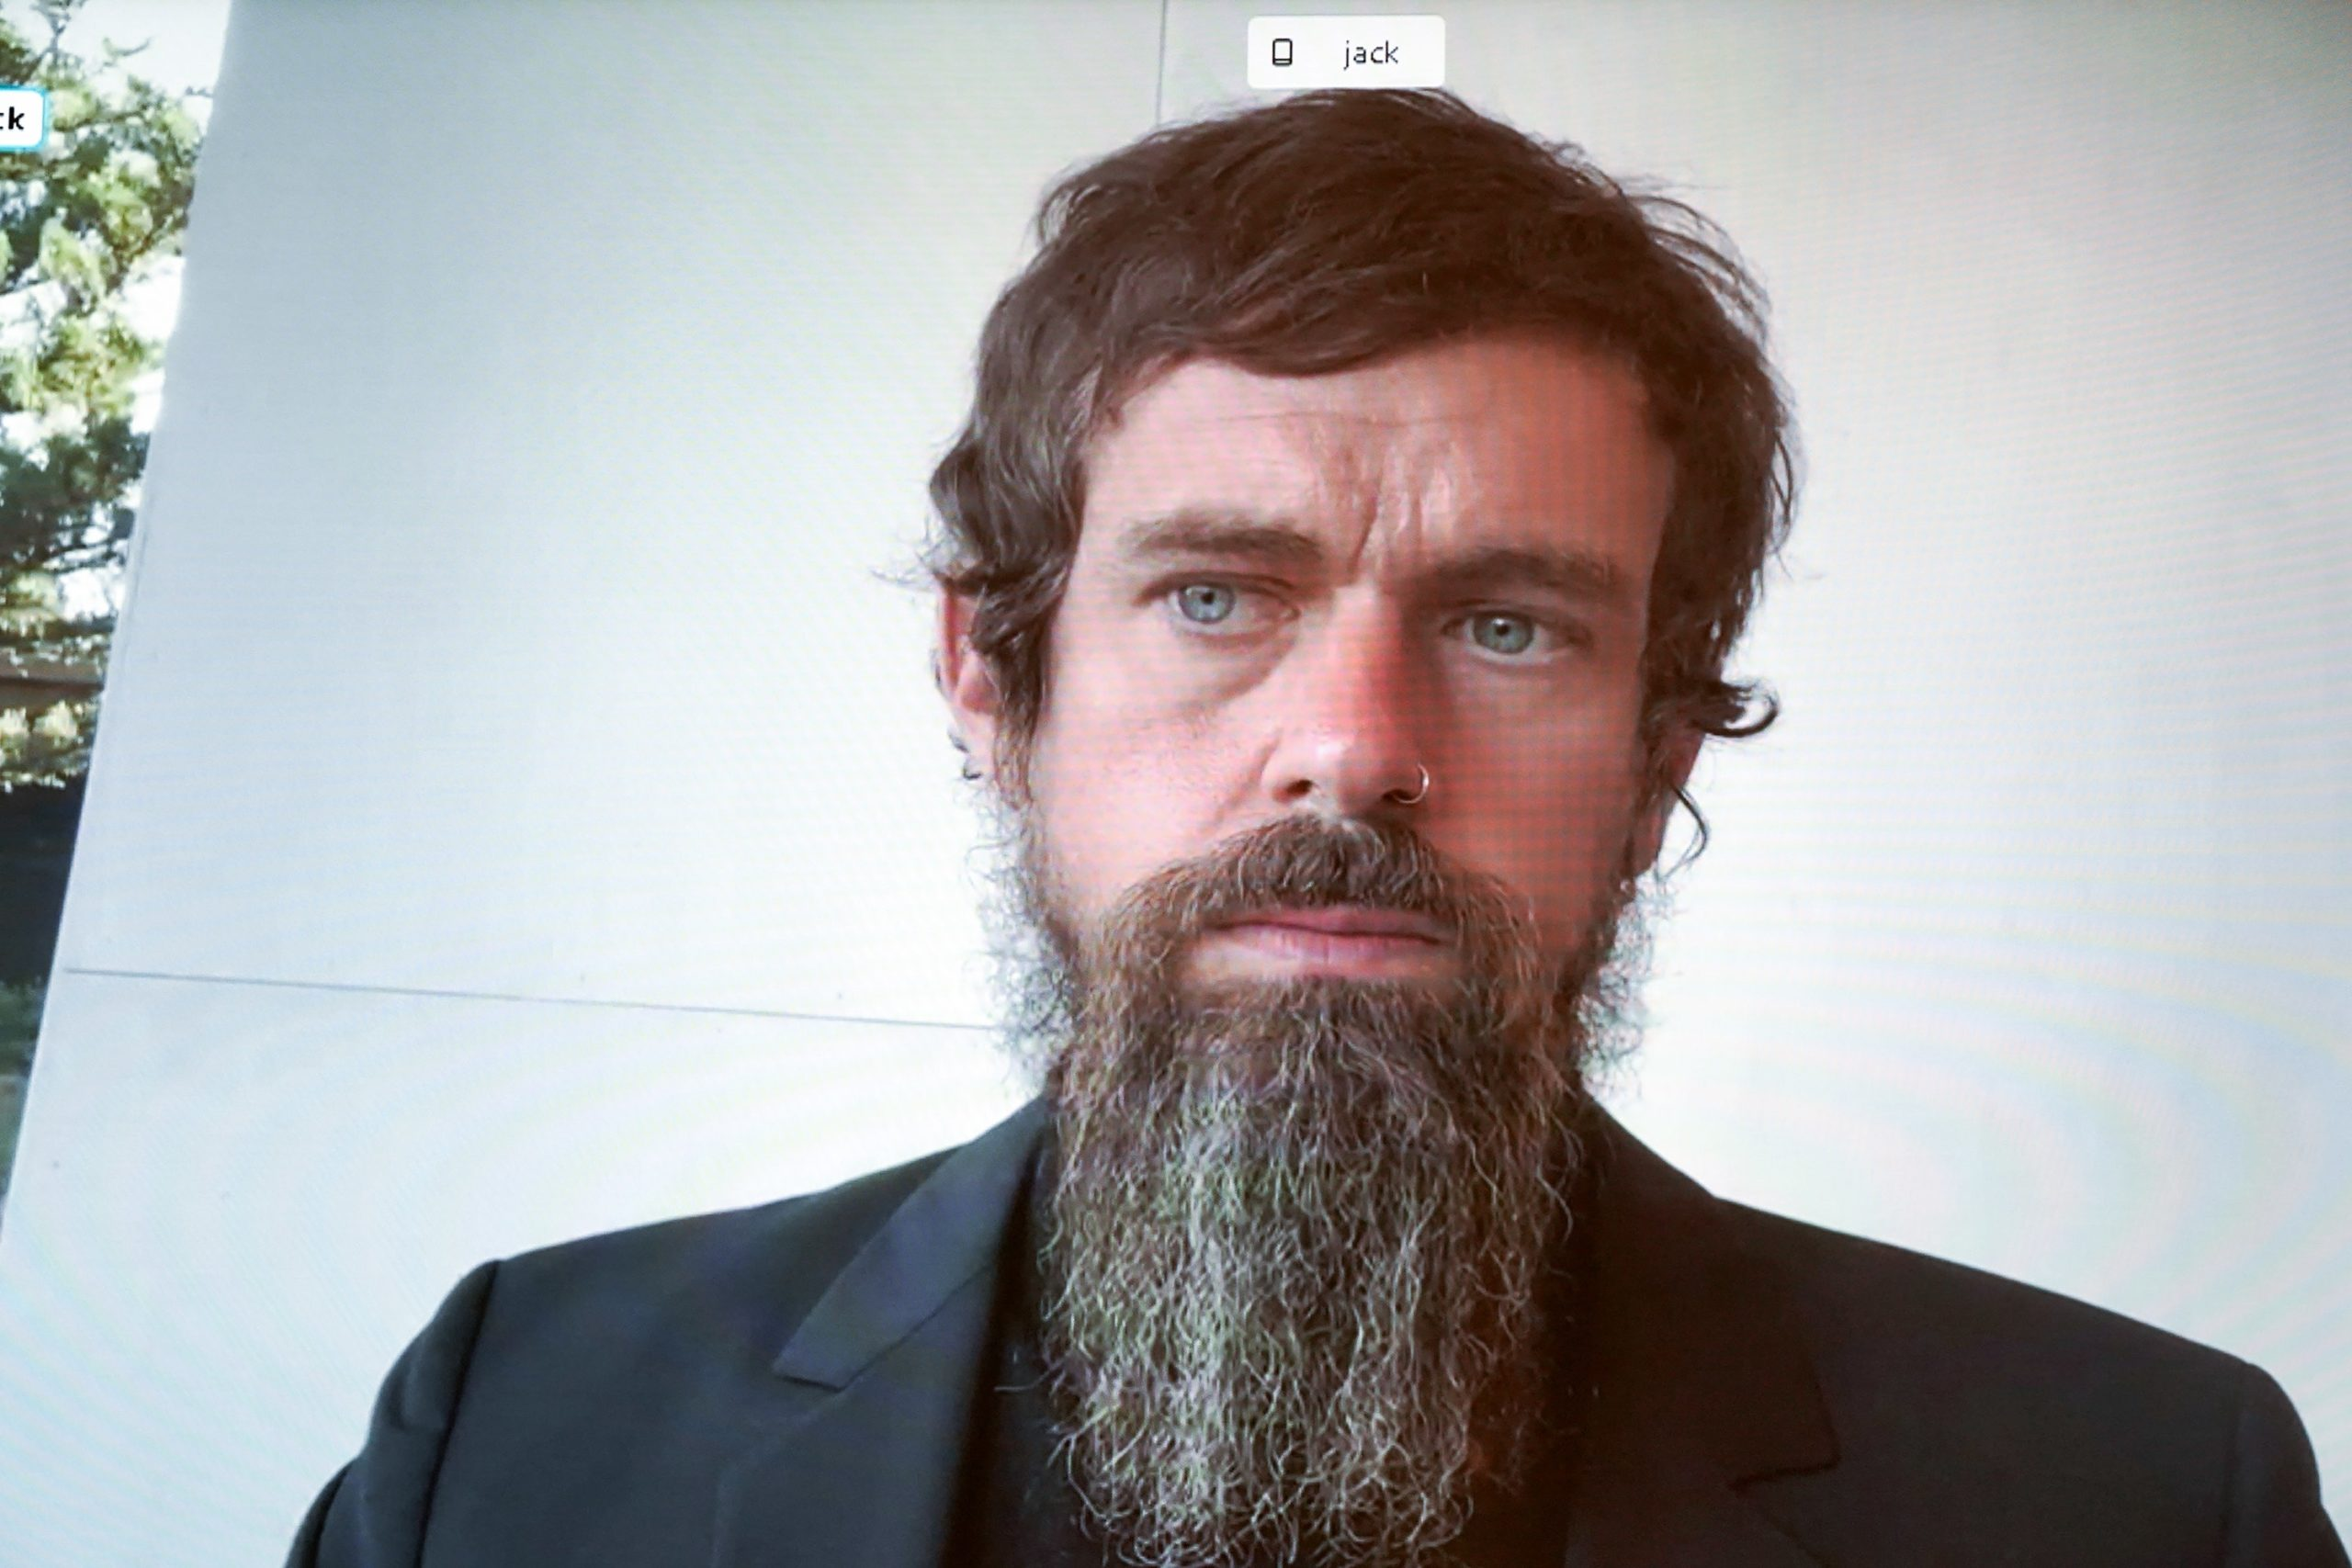 Jack Dorsey went a year without a shave